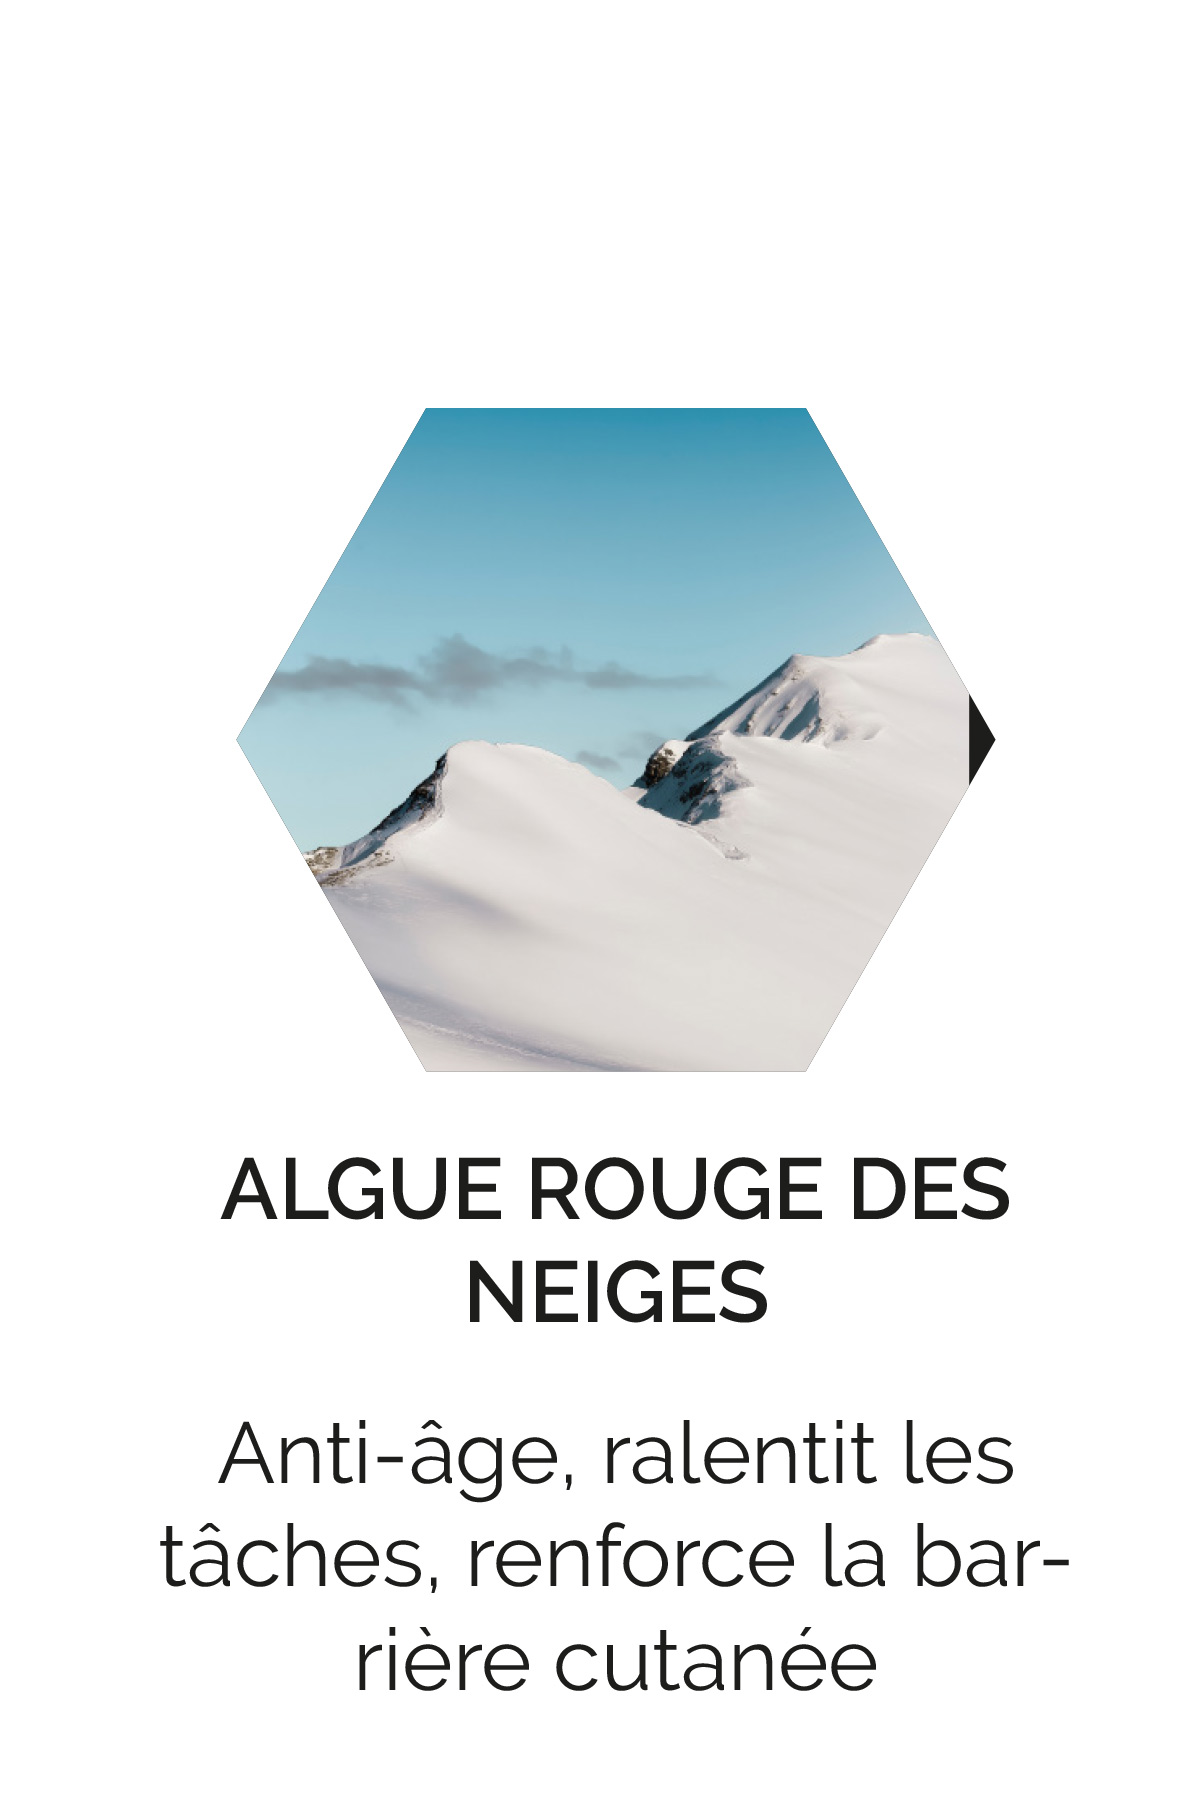 Algue rouge des neiges